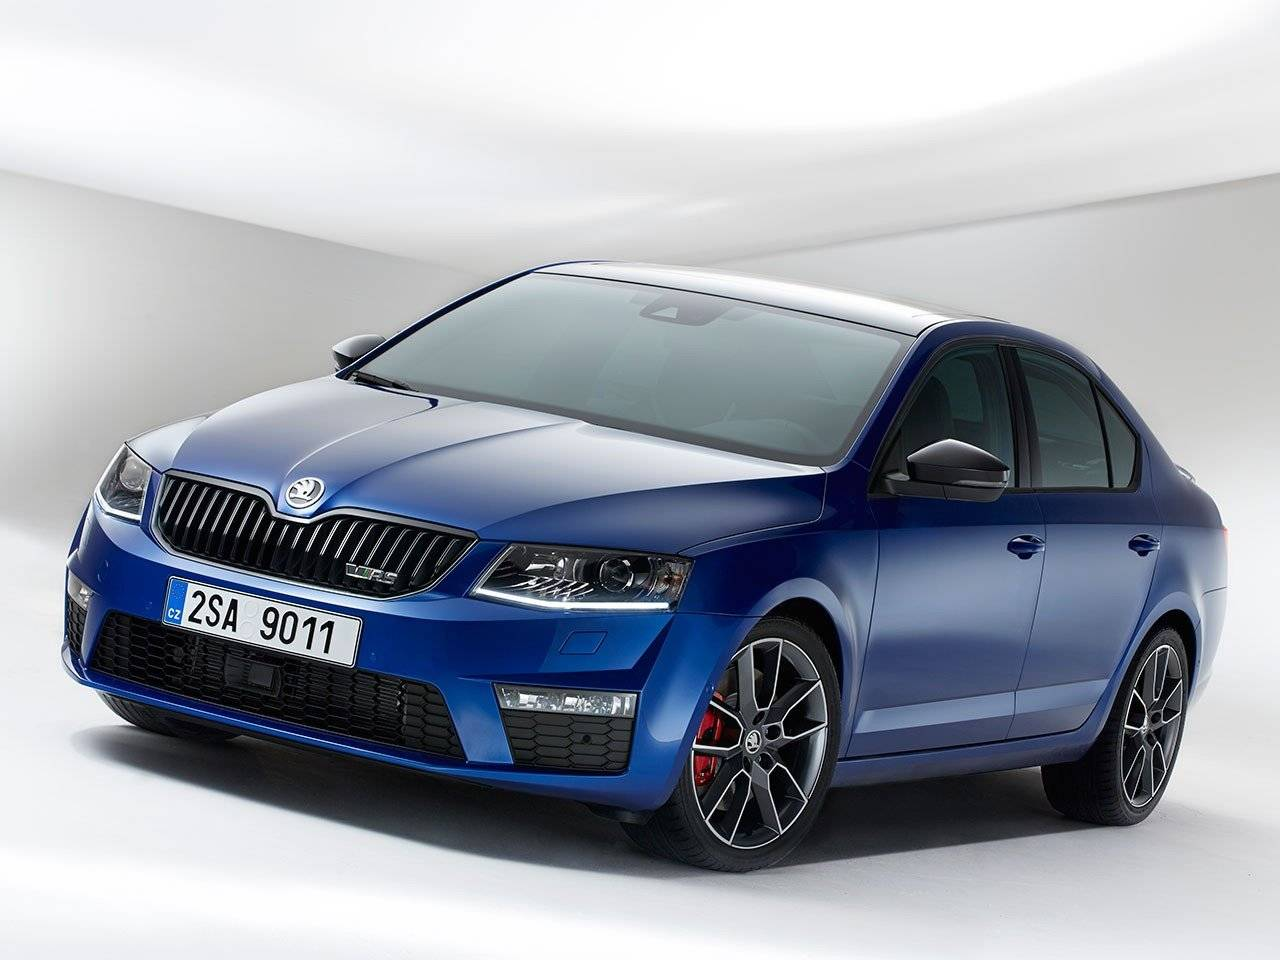 skoda gaat los met nieuwe octavia rs combi autonieuws. Black Bedroom Furniture Sets. Home Design Ideas